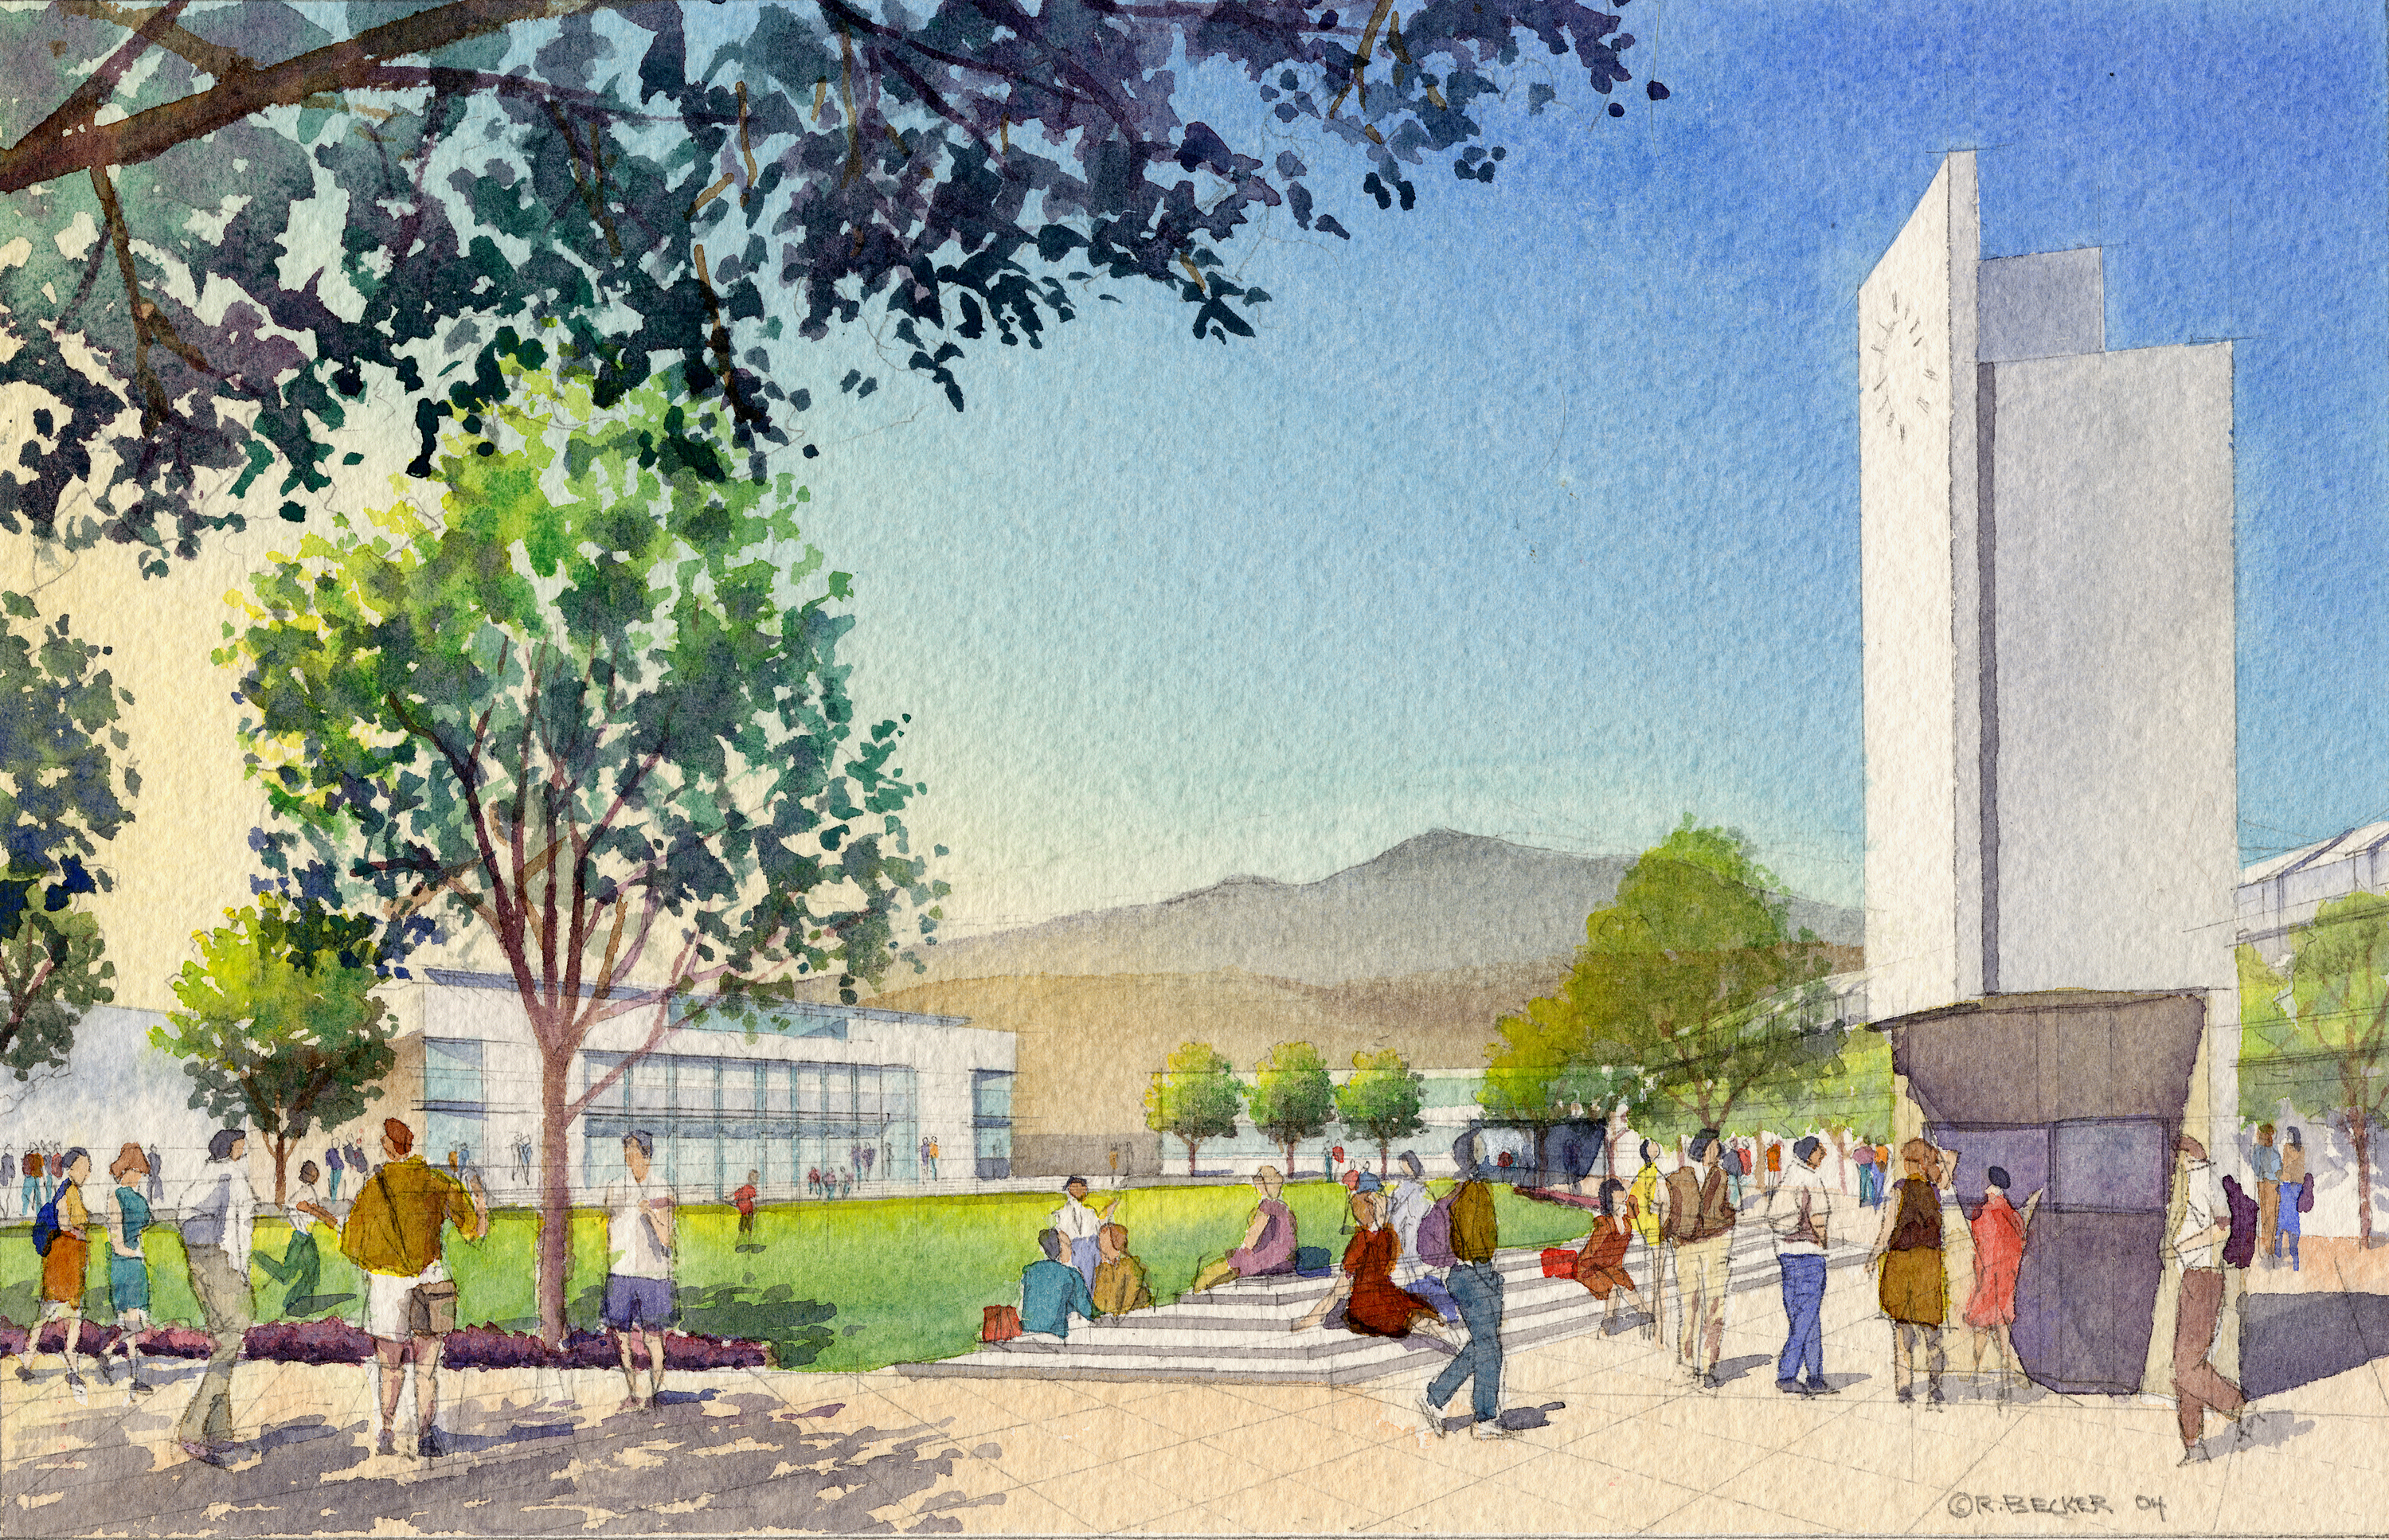 PerkinsAndWill_MiramarQuad_Architectural_Rendering_Watercolor